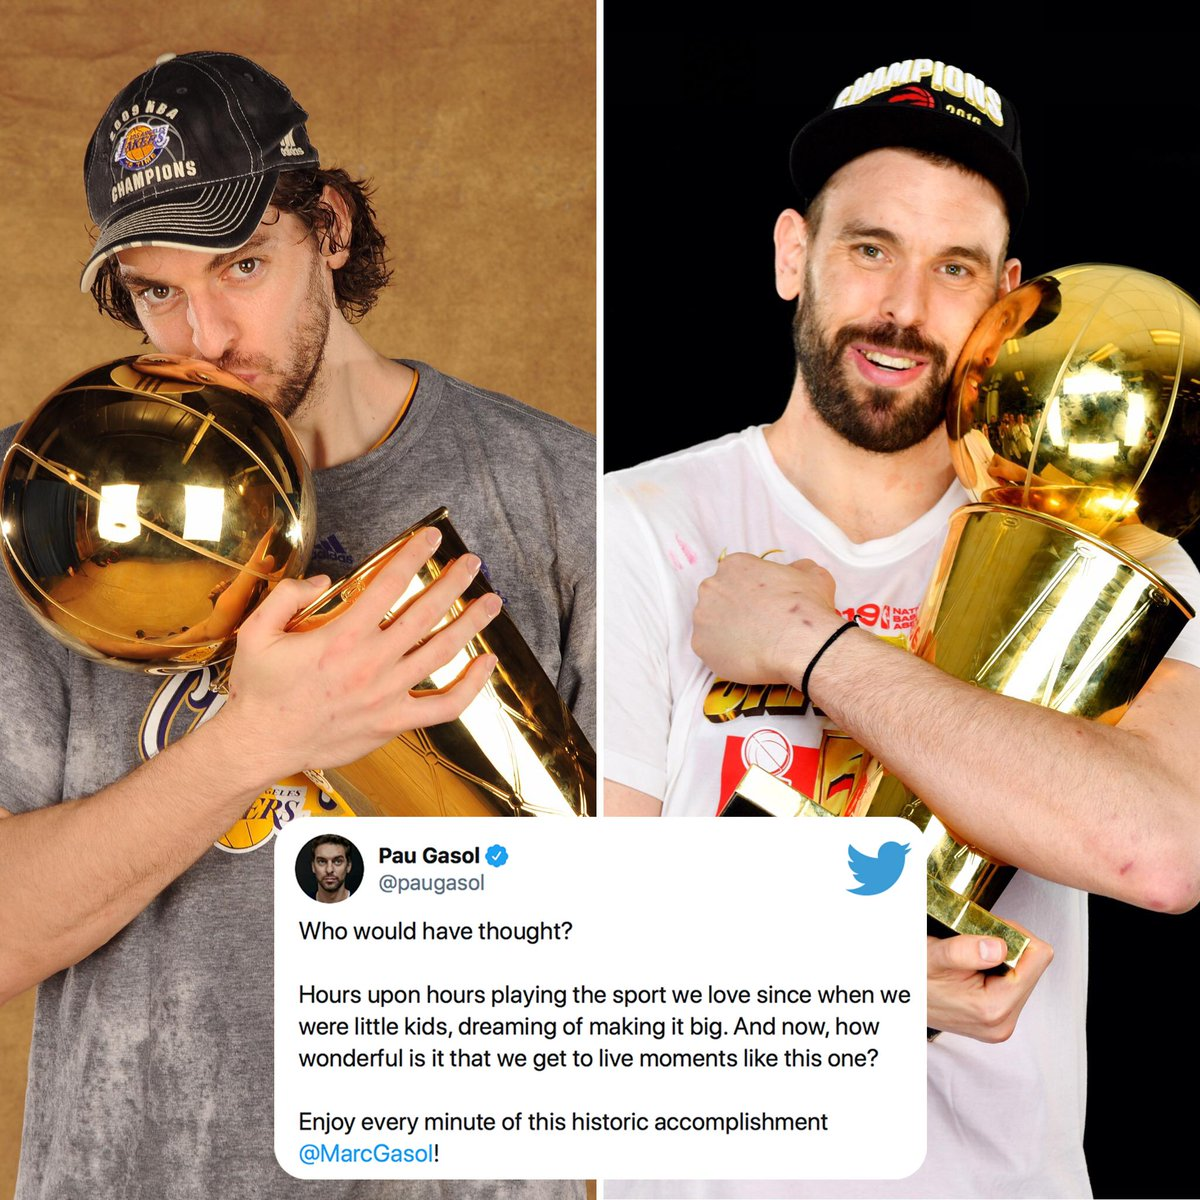 Brothers. Champions. @paugasol and @MarcGasol made NBA history in their own way.